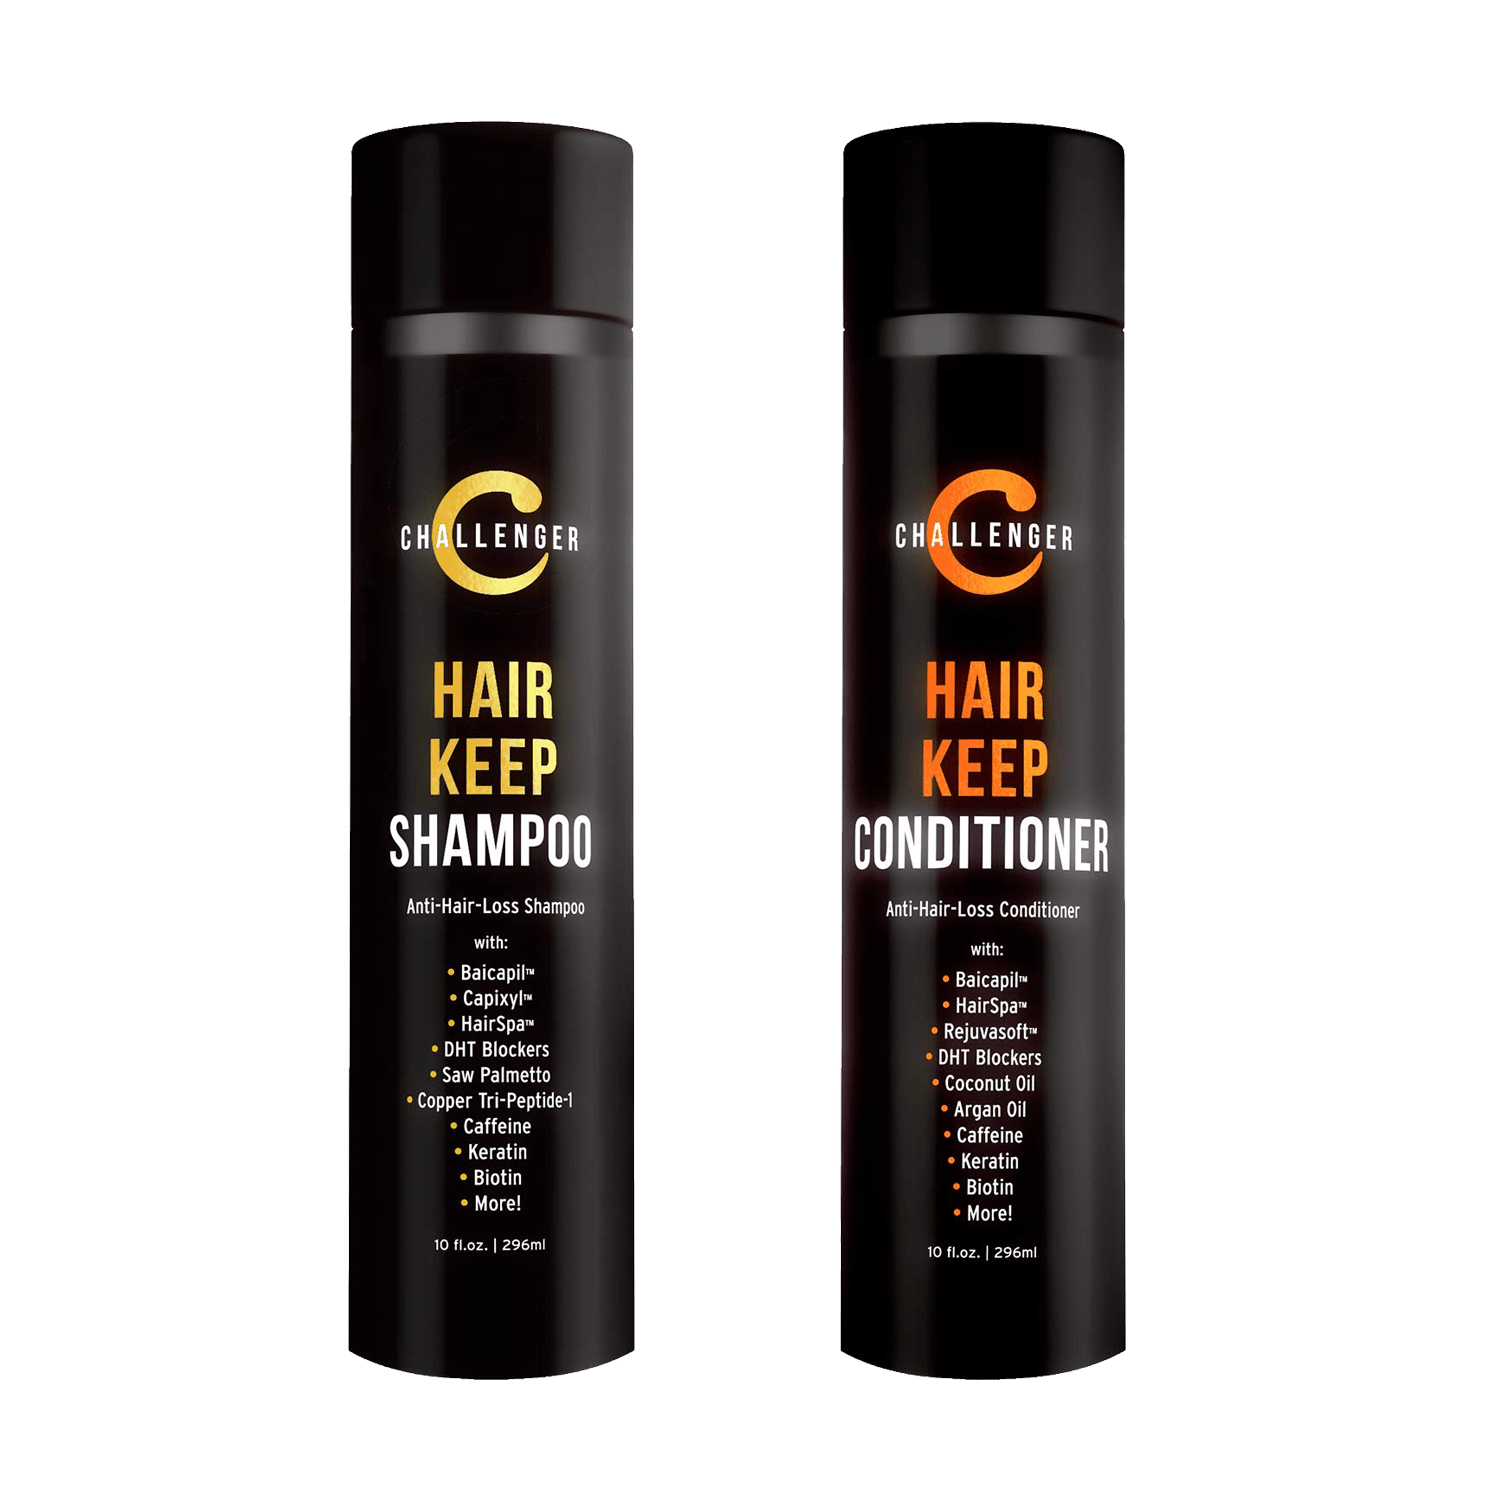 Challenger Hair Keep Shampoo & Conditioner, 2X 10 Oz Bottles - CHALLENGER MEN'S CARE